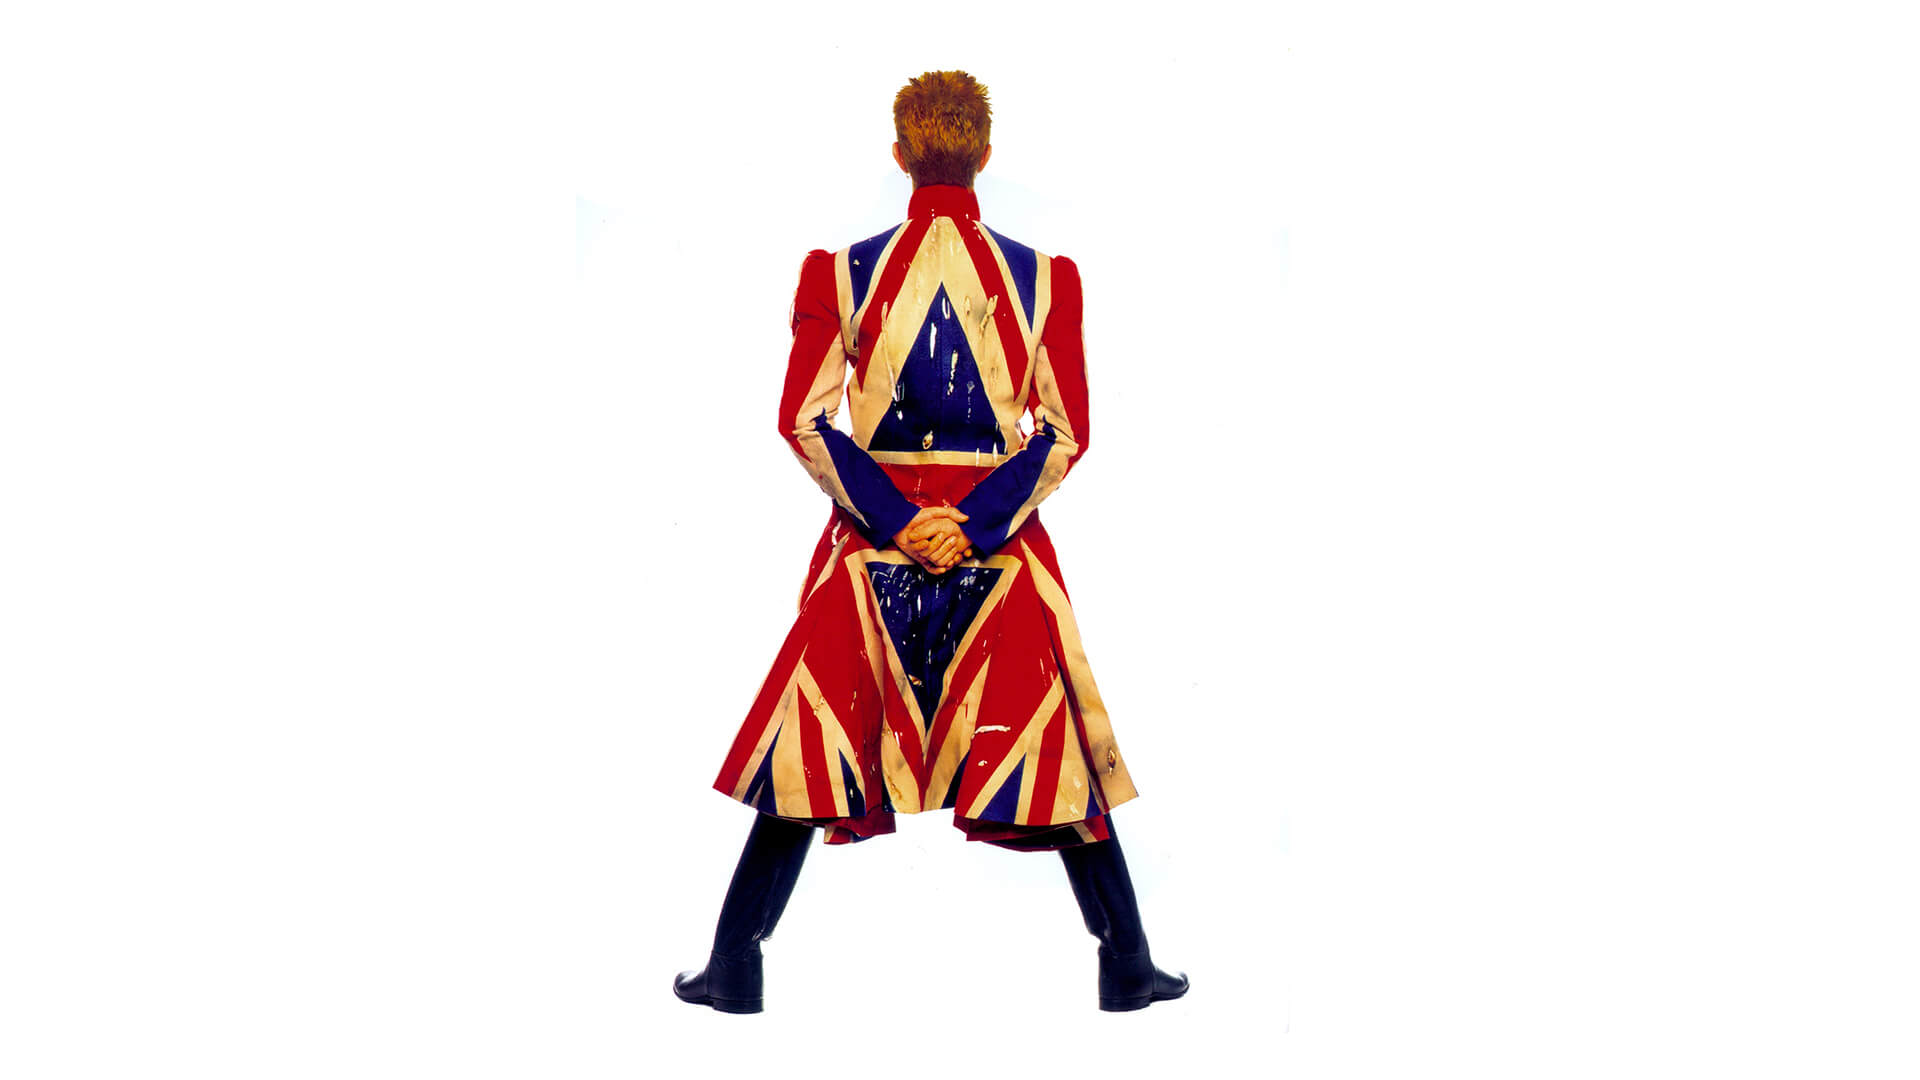 Image of David Bowie is